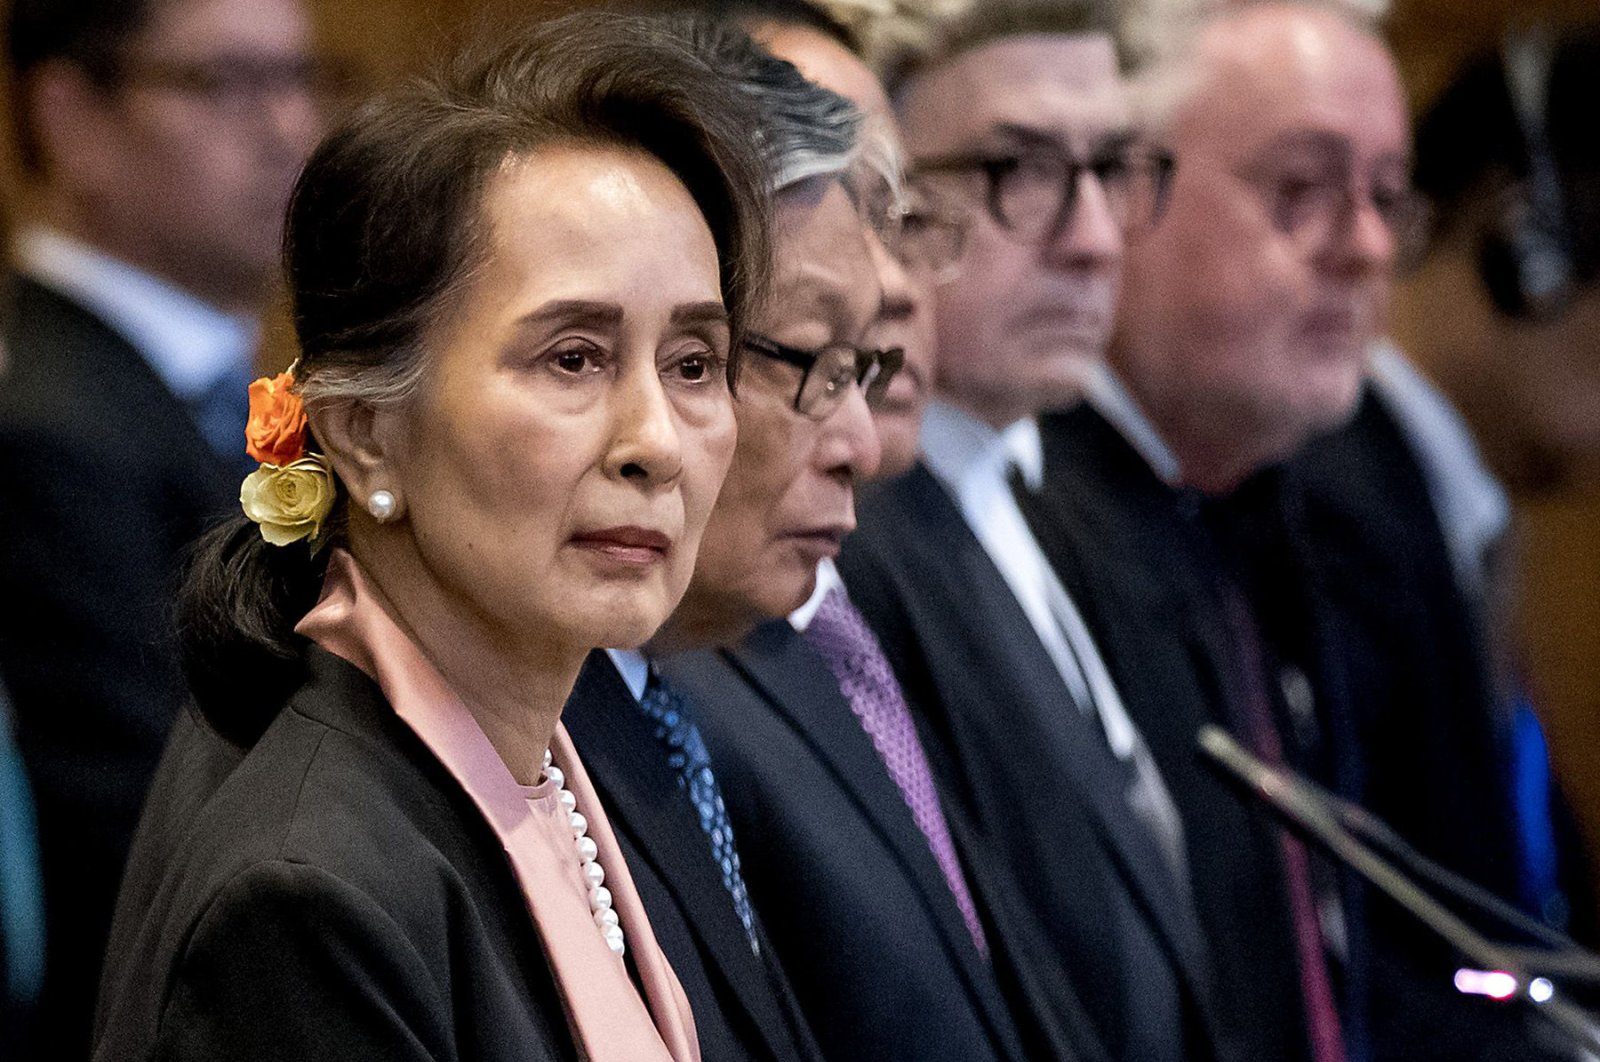 Myanmar's State Counselor Aung San Suu Kyi stands before U.N.'s International Court of Justice, The Hague, Dec 10, 2019. (AFP Photo)